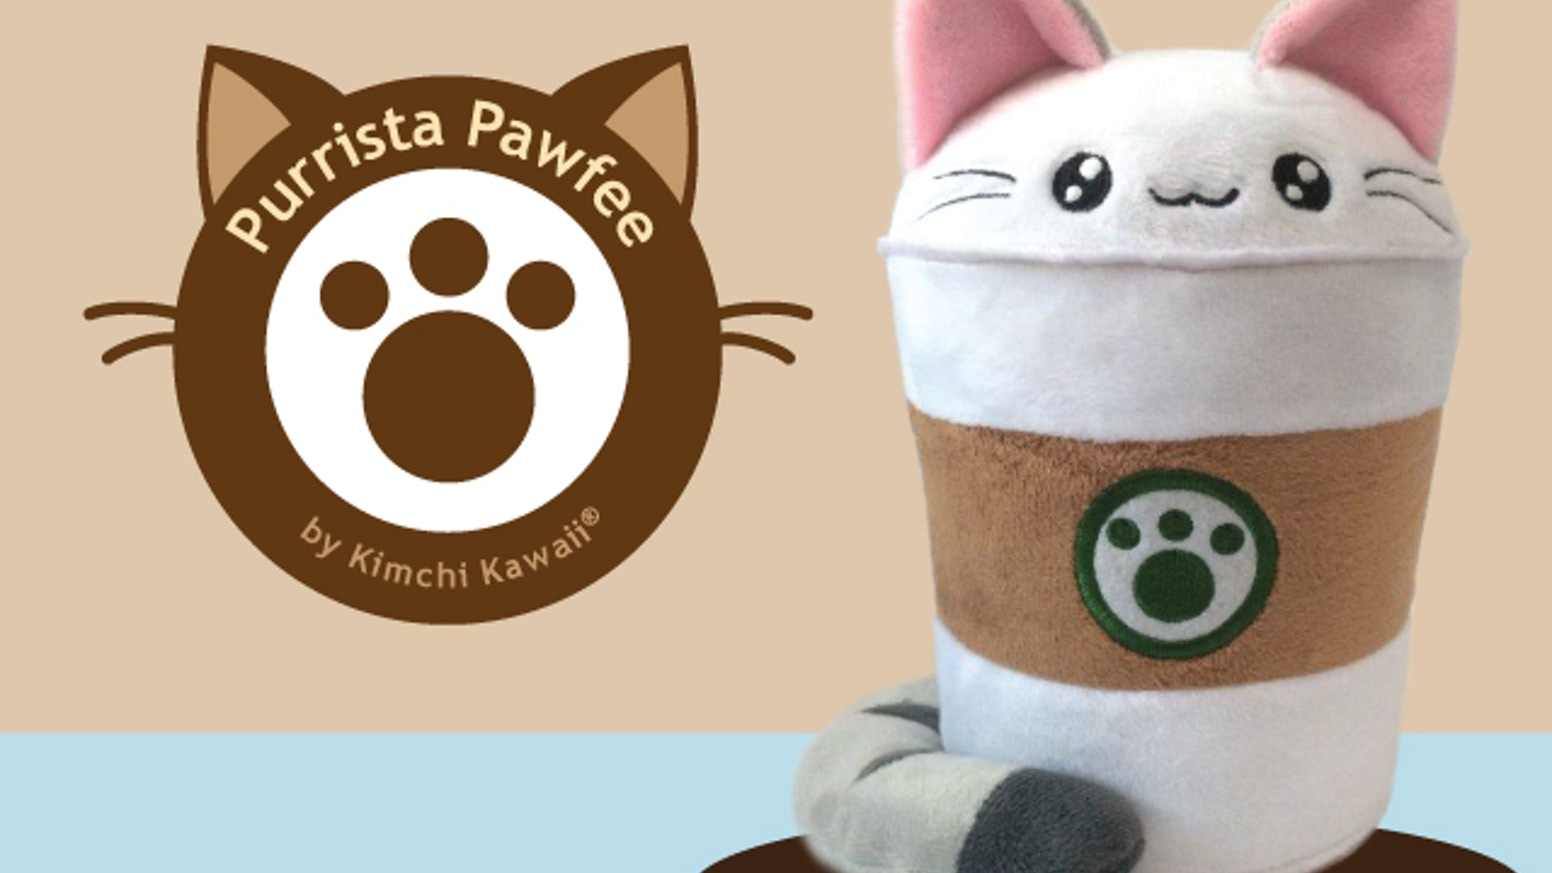 Purrista Pawfee is a series of cute plush toys that combine coffee culture, word play and cats. By Kimchi Kawaii.